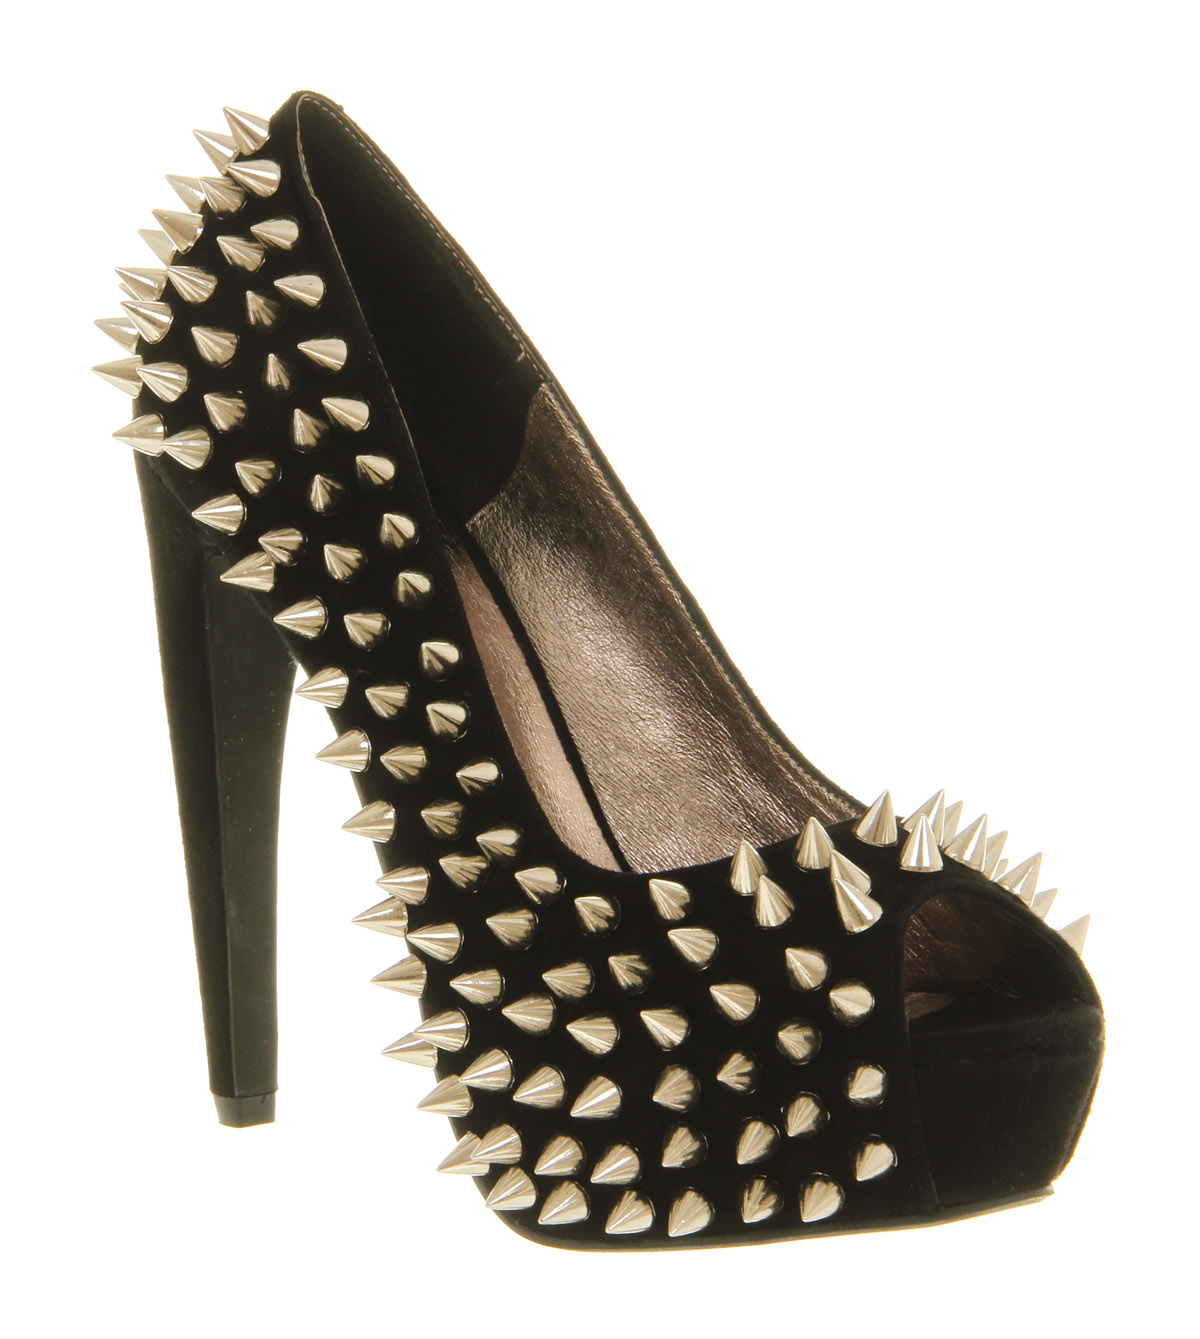 Womens Jeffrey Campbell During Spike High Heel BLACK SUEDE GOLD SPIKES Heels | eBay